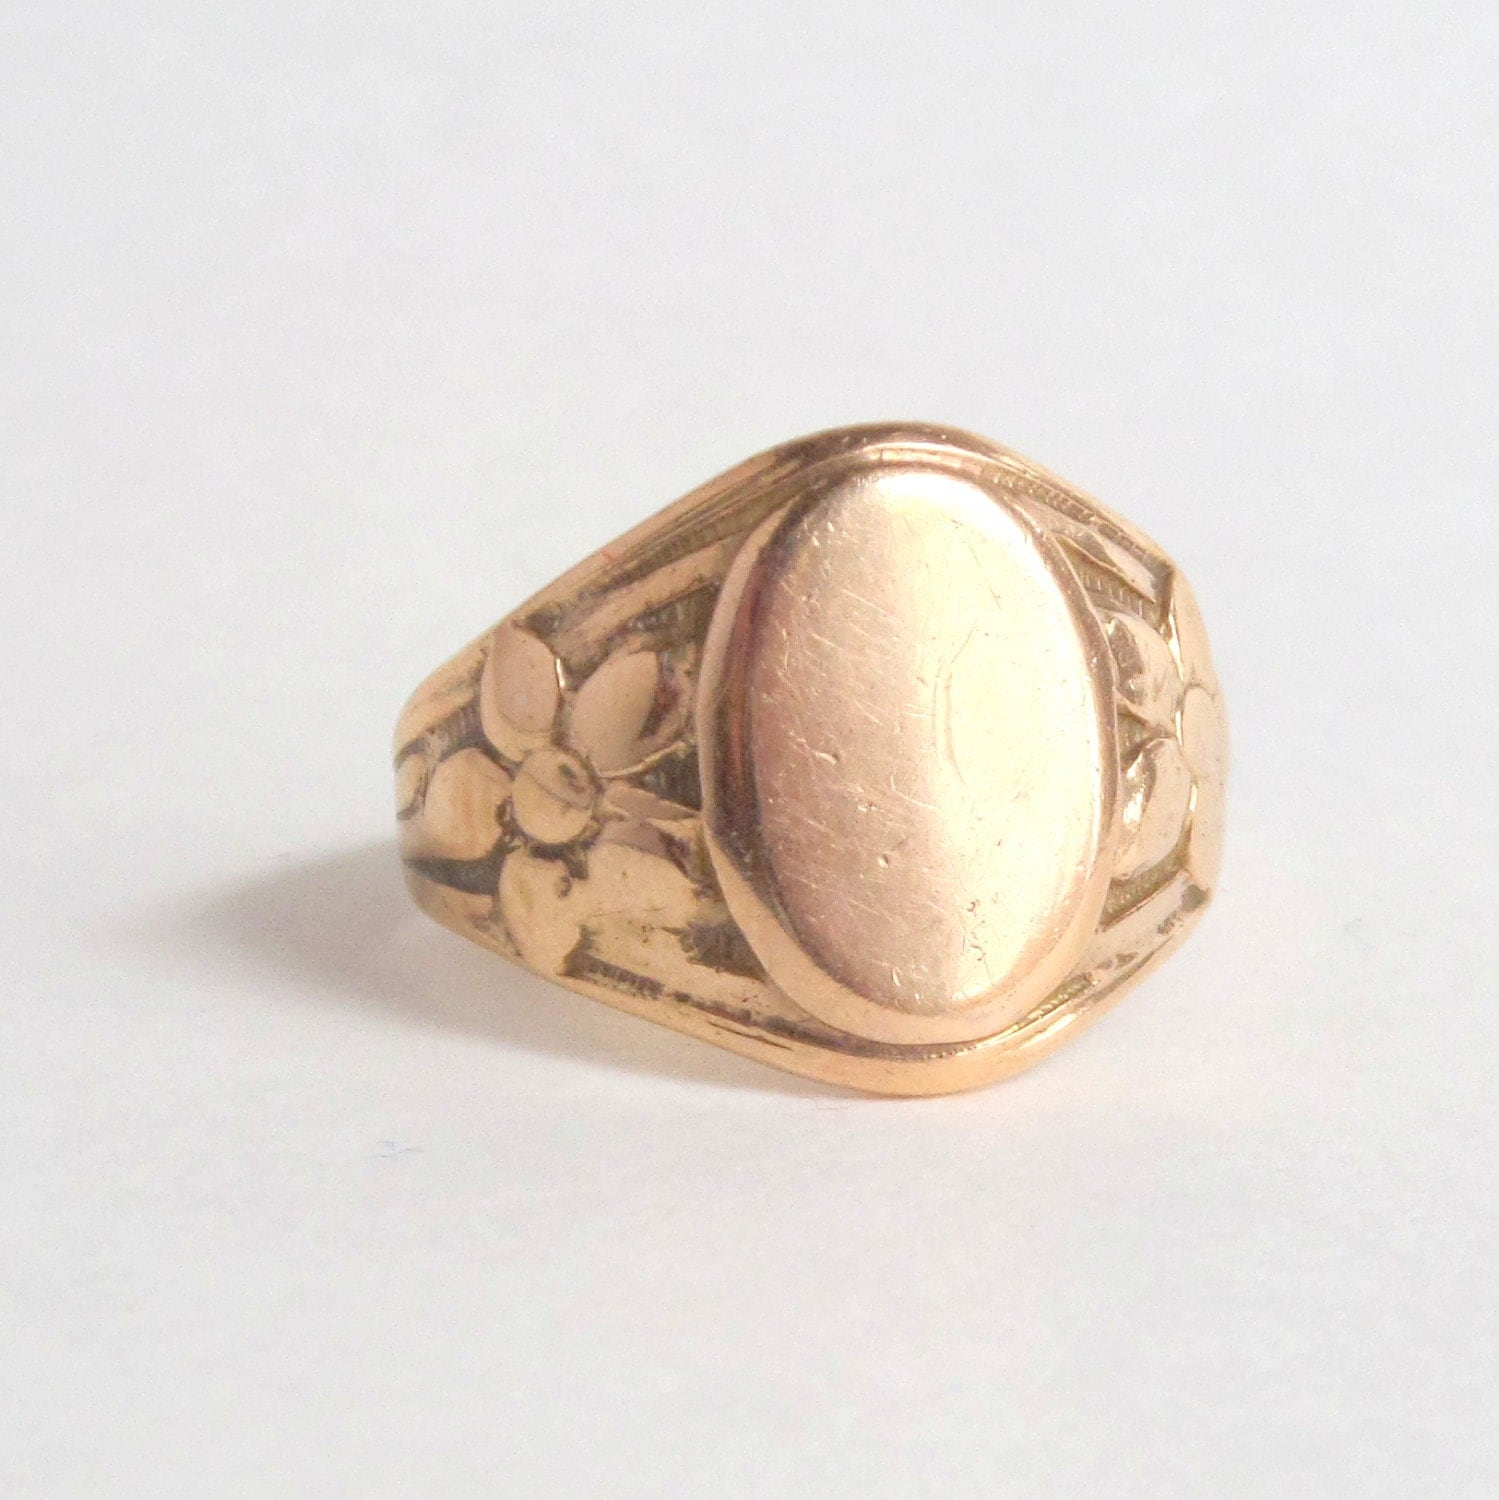 antique floral signet ring 10k gold 5 25 by pinguim